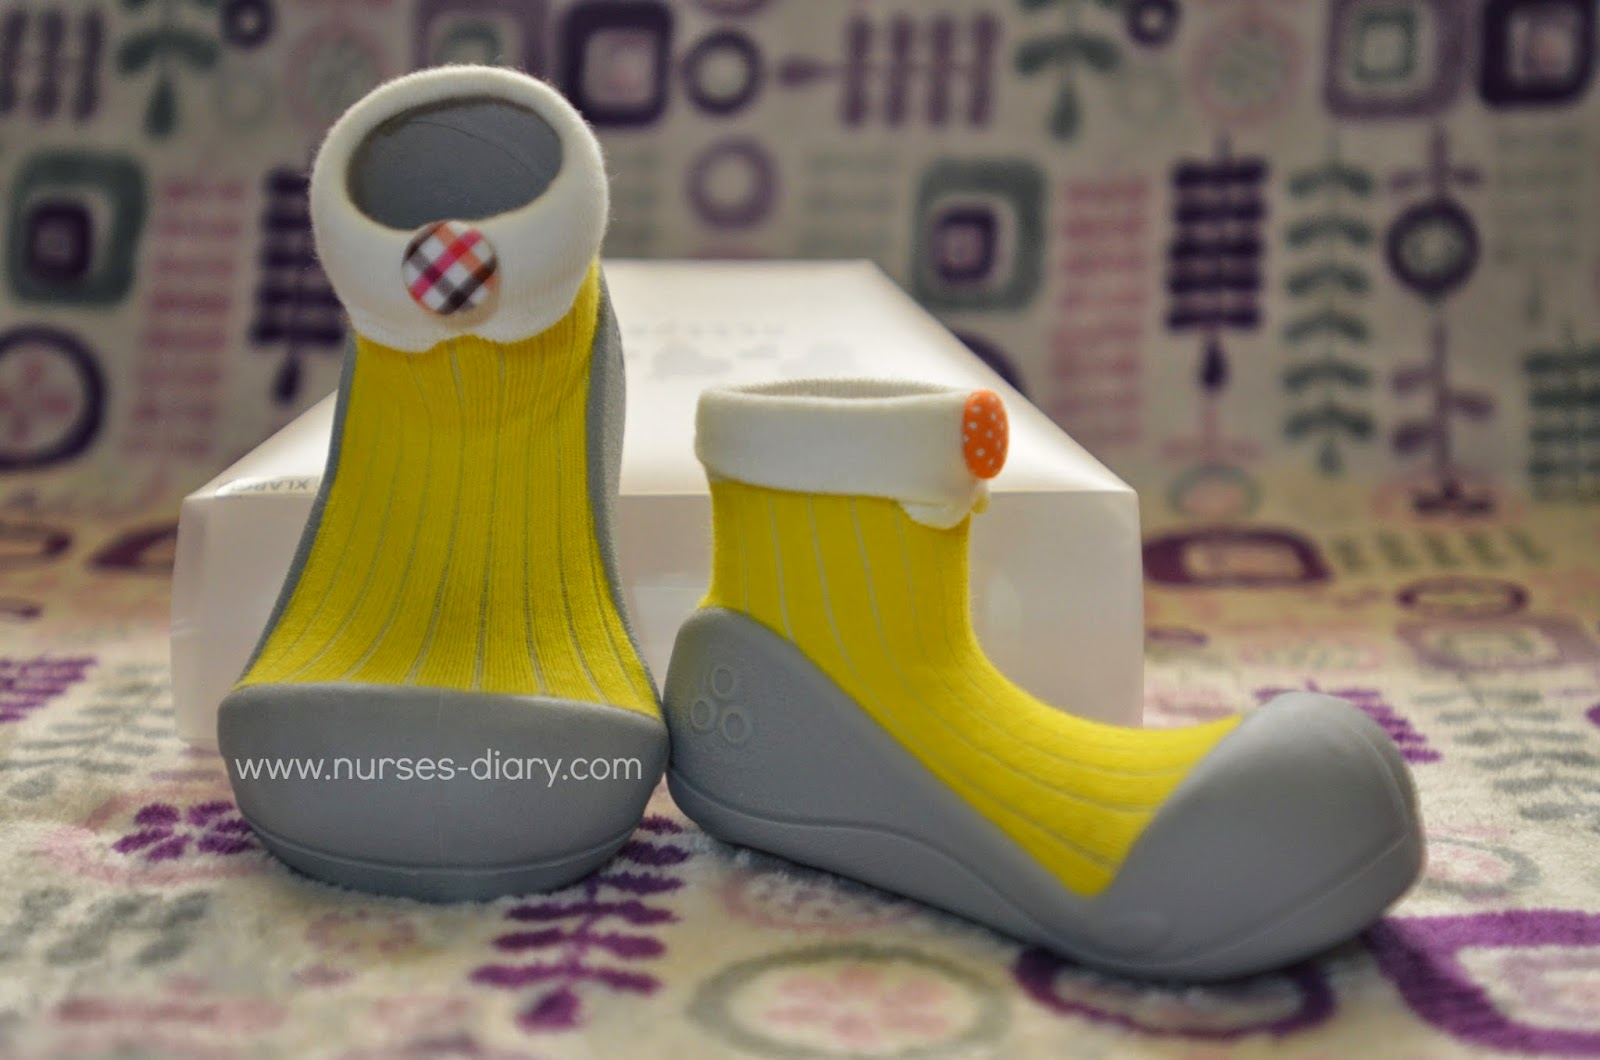 Attipas Shoes Review: Babies and Toddlers Can Wear Comfort and Style